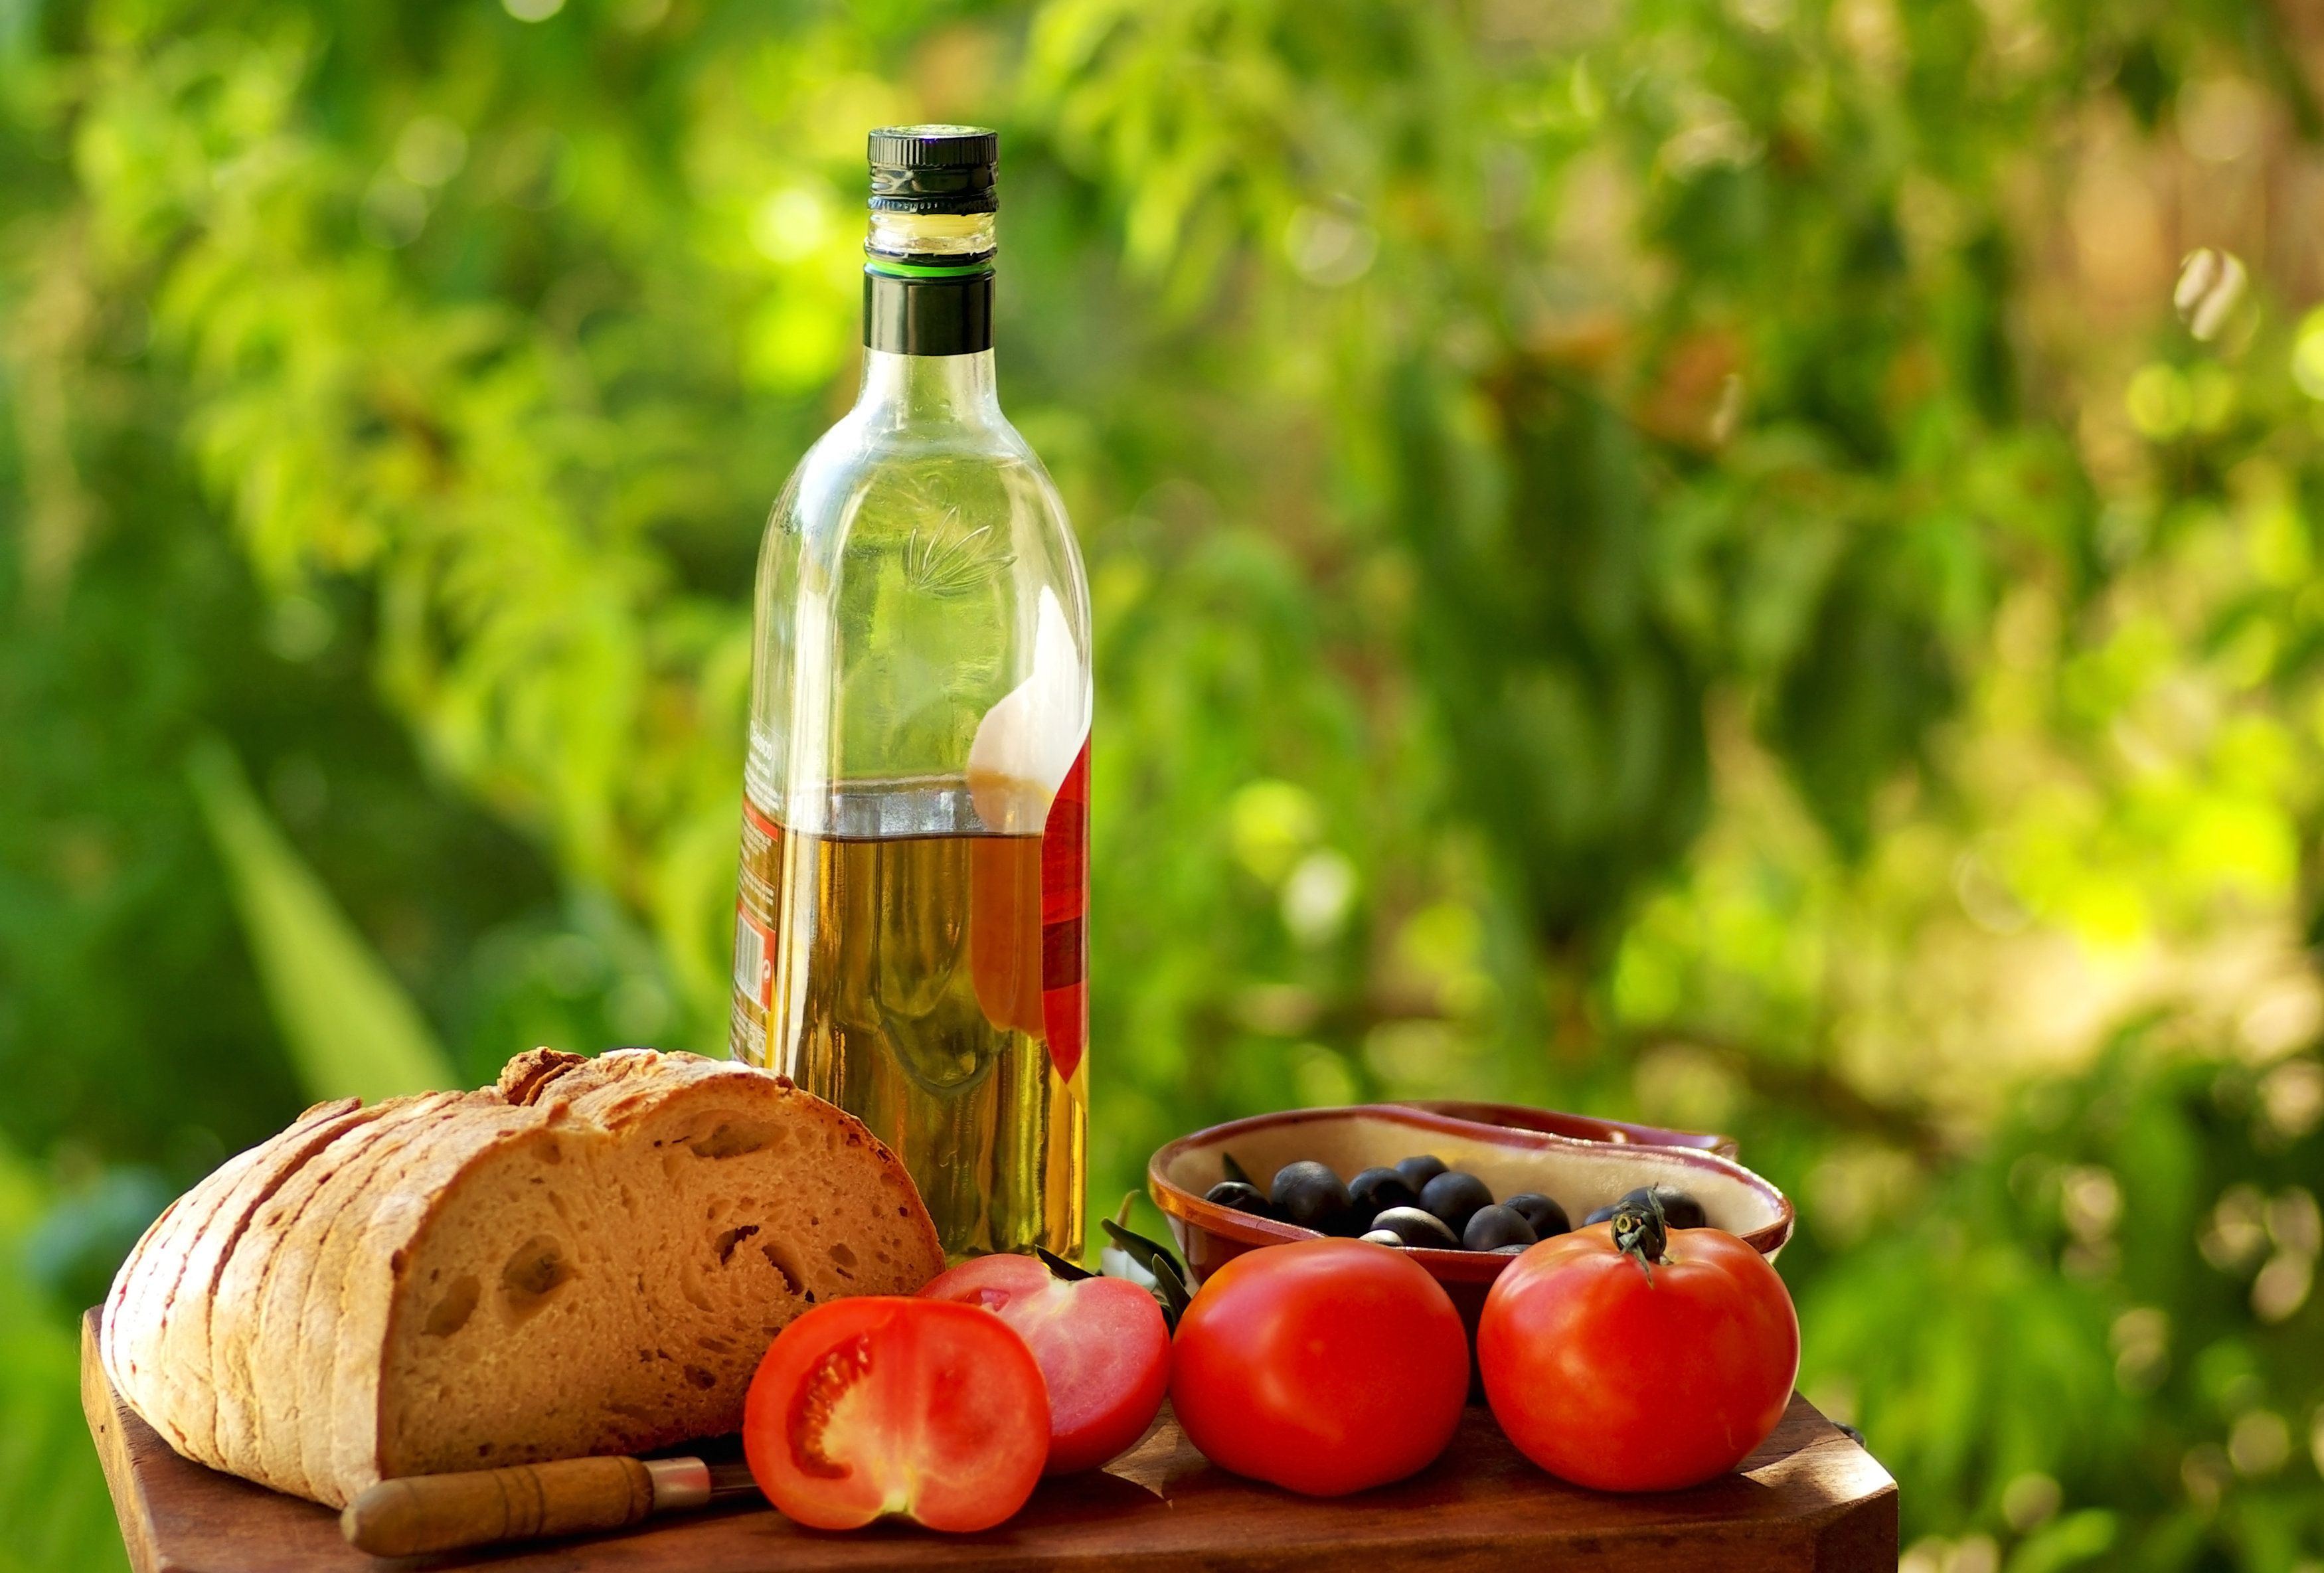 Why Heart Disease Patients Might Want To Switch To A Mediterranean Diet